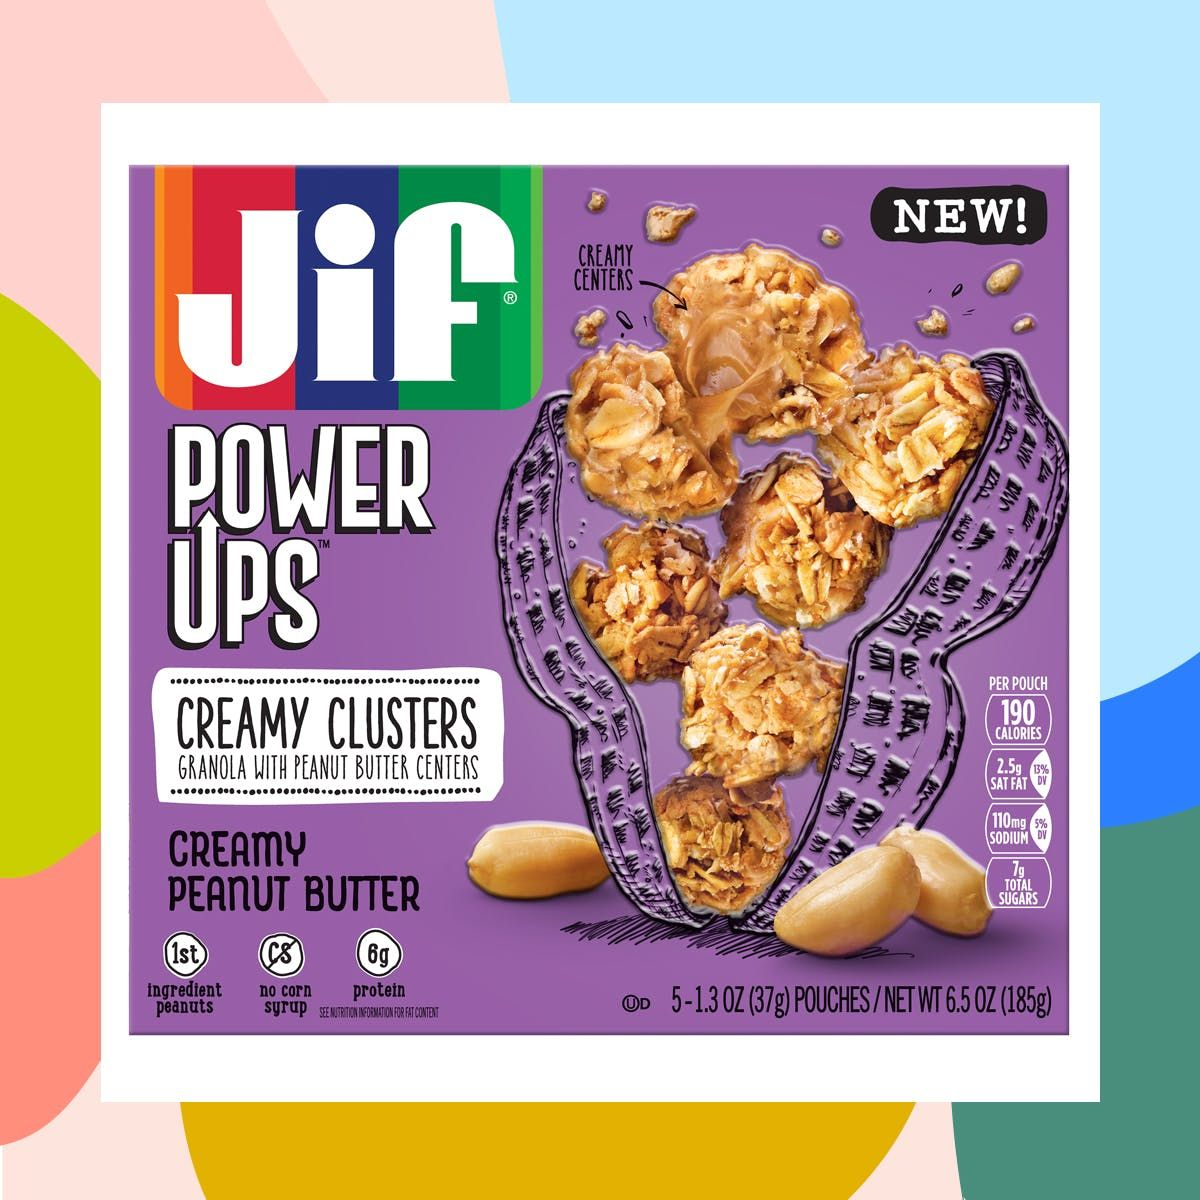 JIF power ups - Sonic branding for PowerUps campaign.